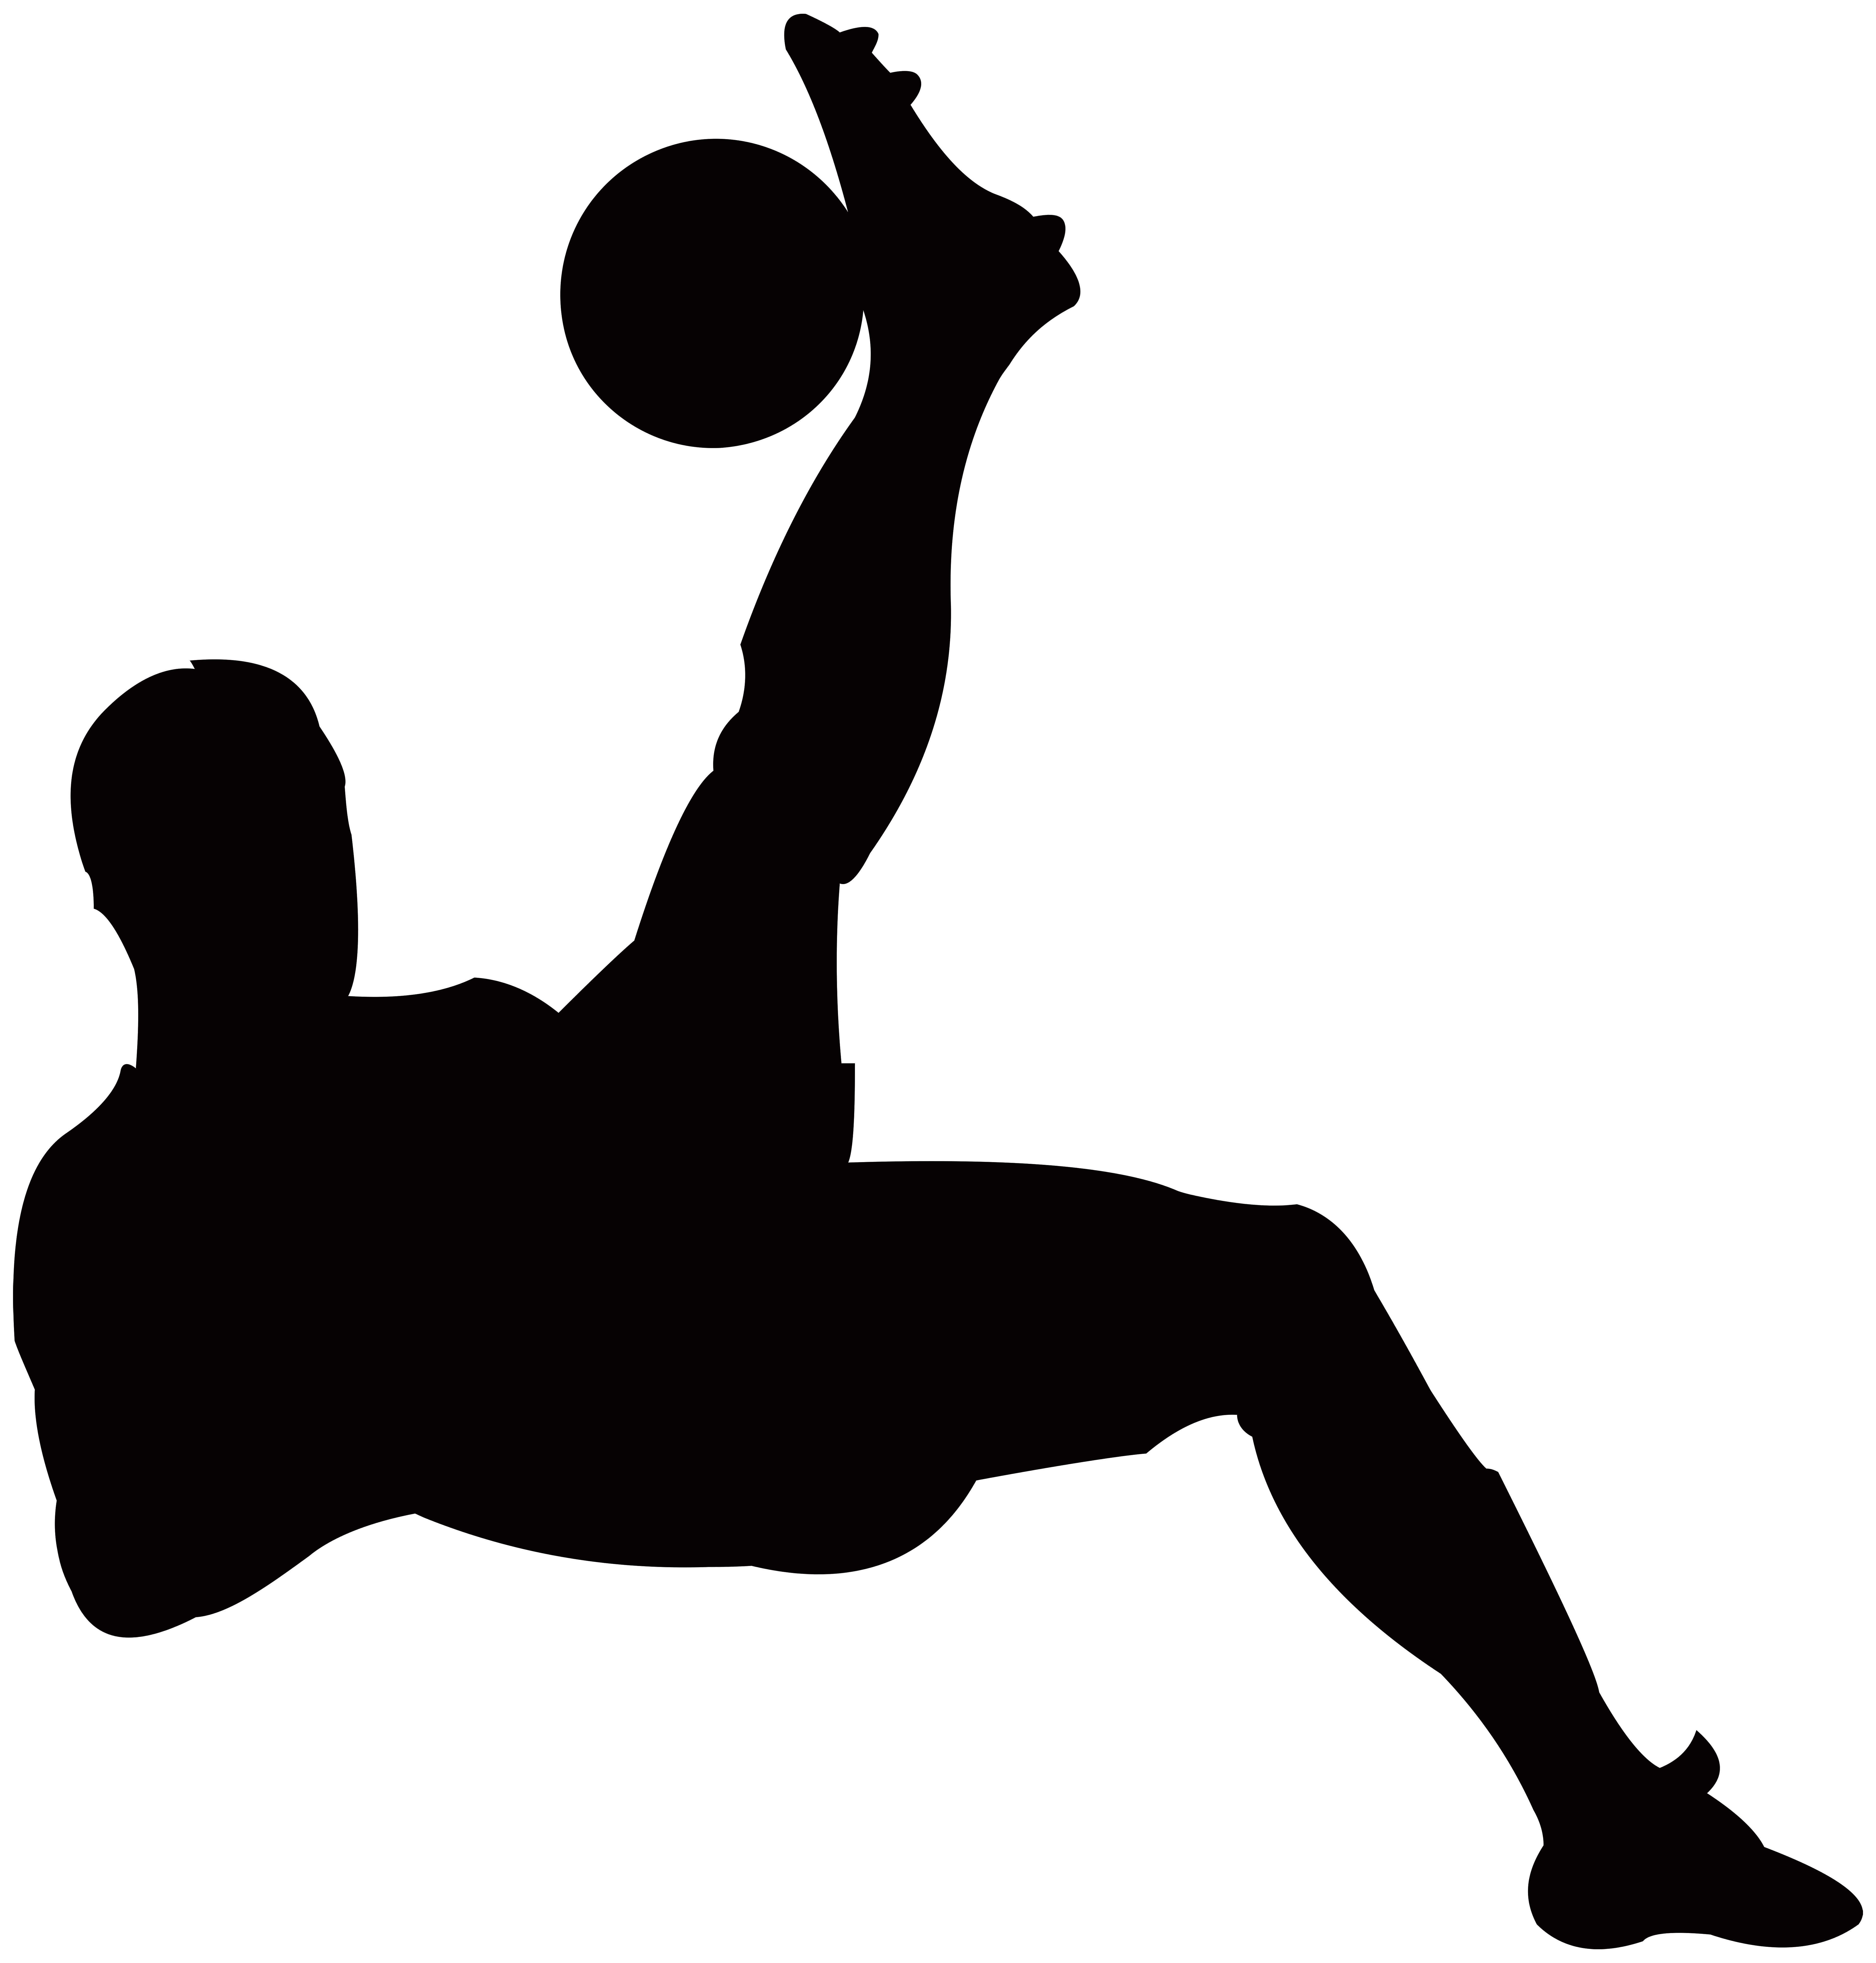 football player silhouette clipart at getdrawings com free for rh getdrawings com